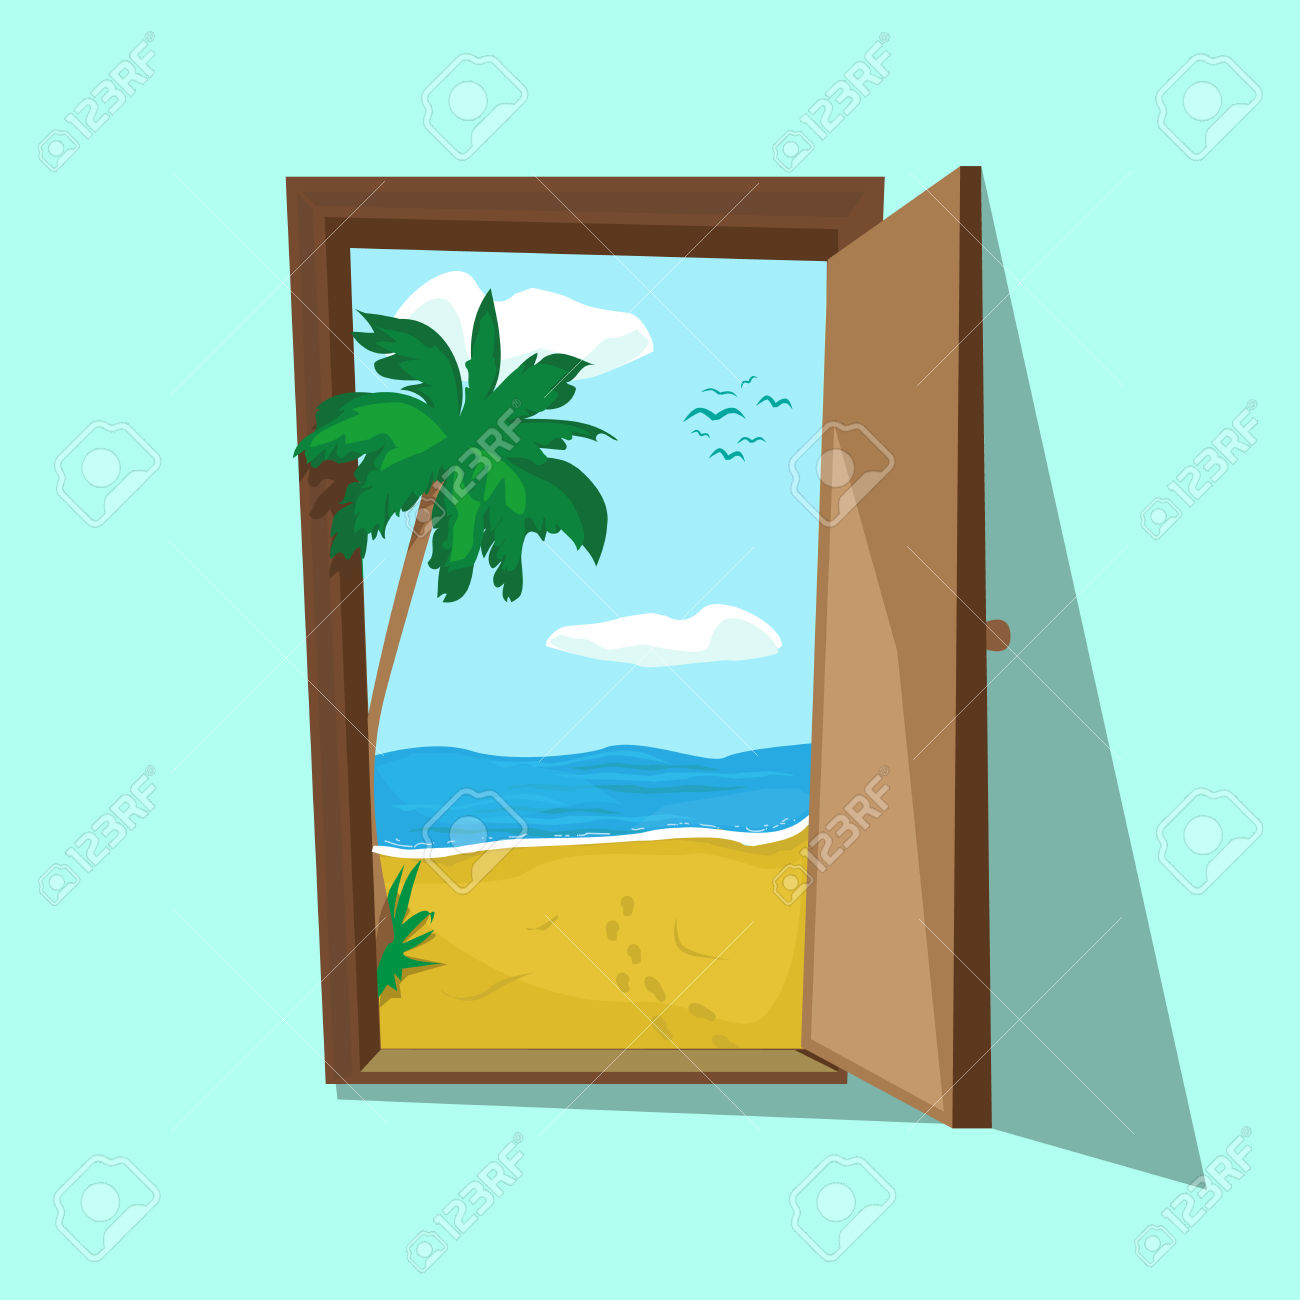 Illustration Of An Open Door With Beach Palm And Sea There. Dream.